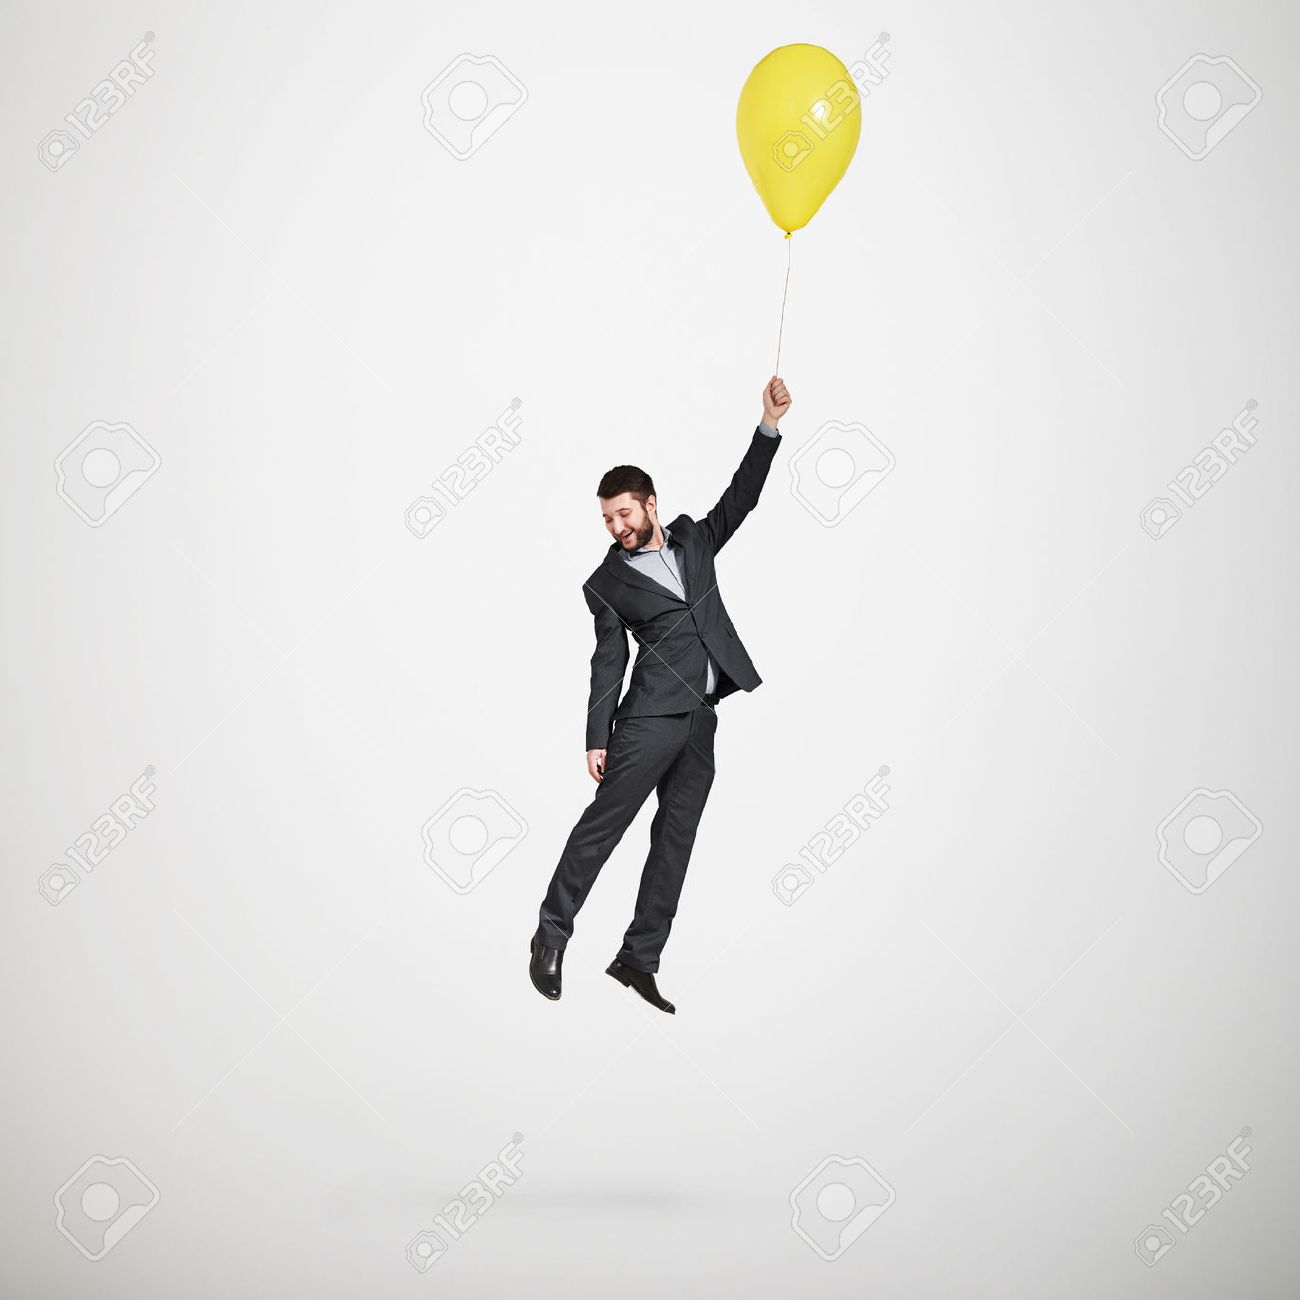 laughing man flying with yellow balloon and looking down over light grey background - 40928687